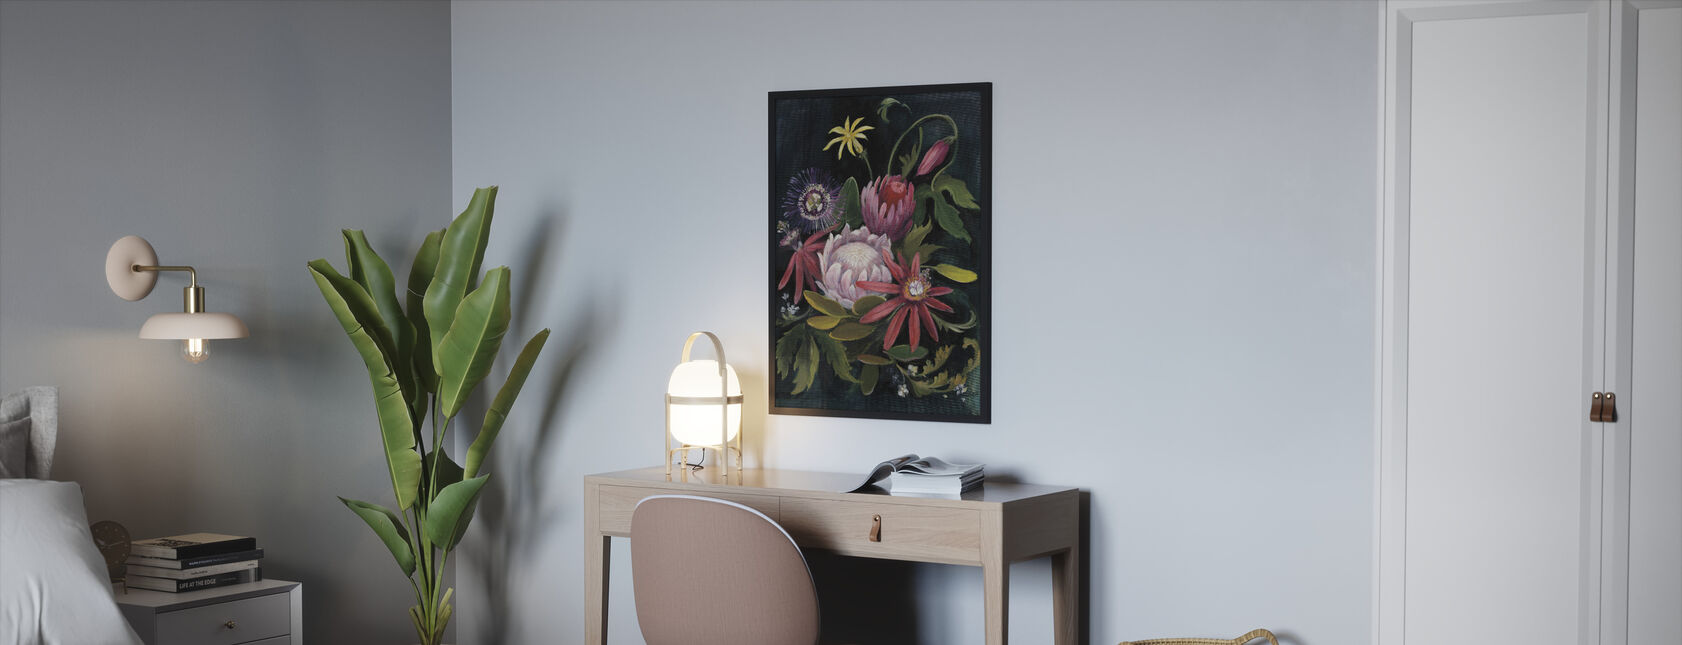 Flower Show II - Framed print - Bedroom